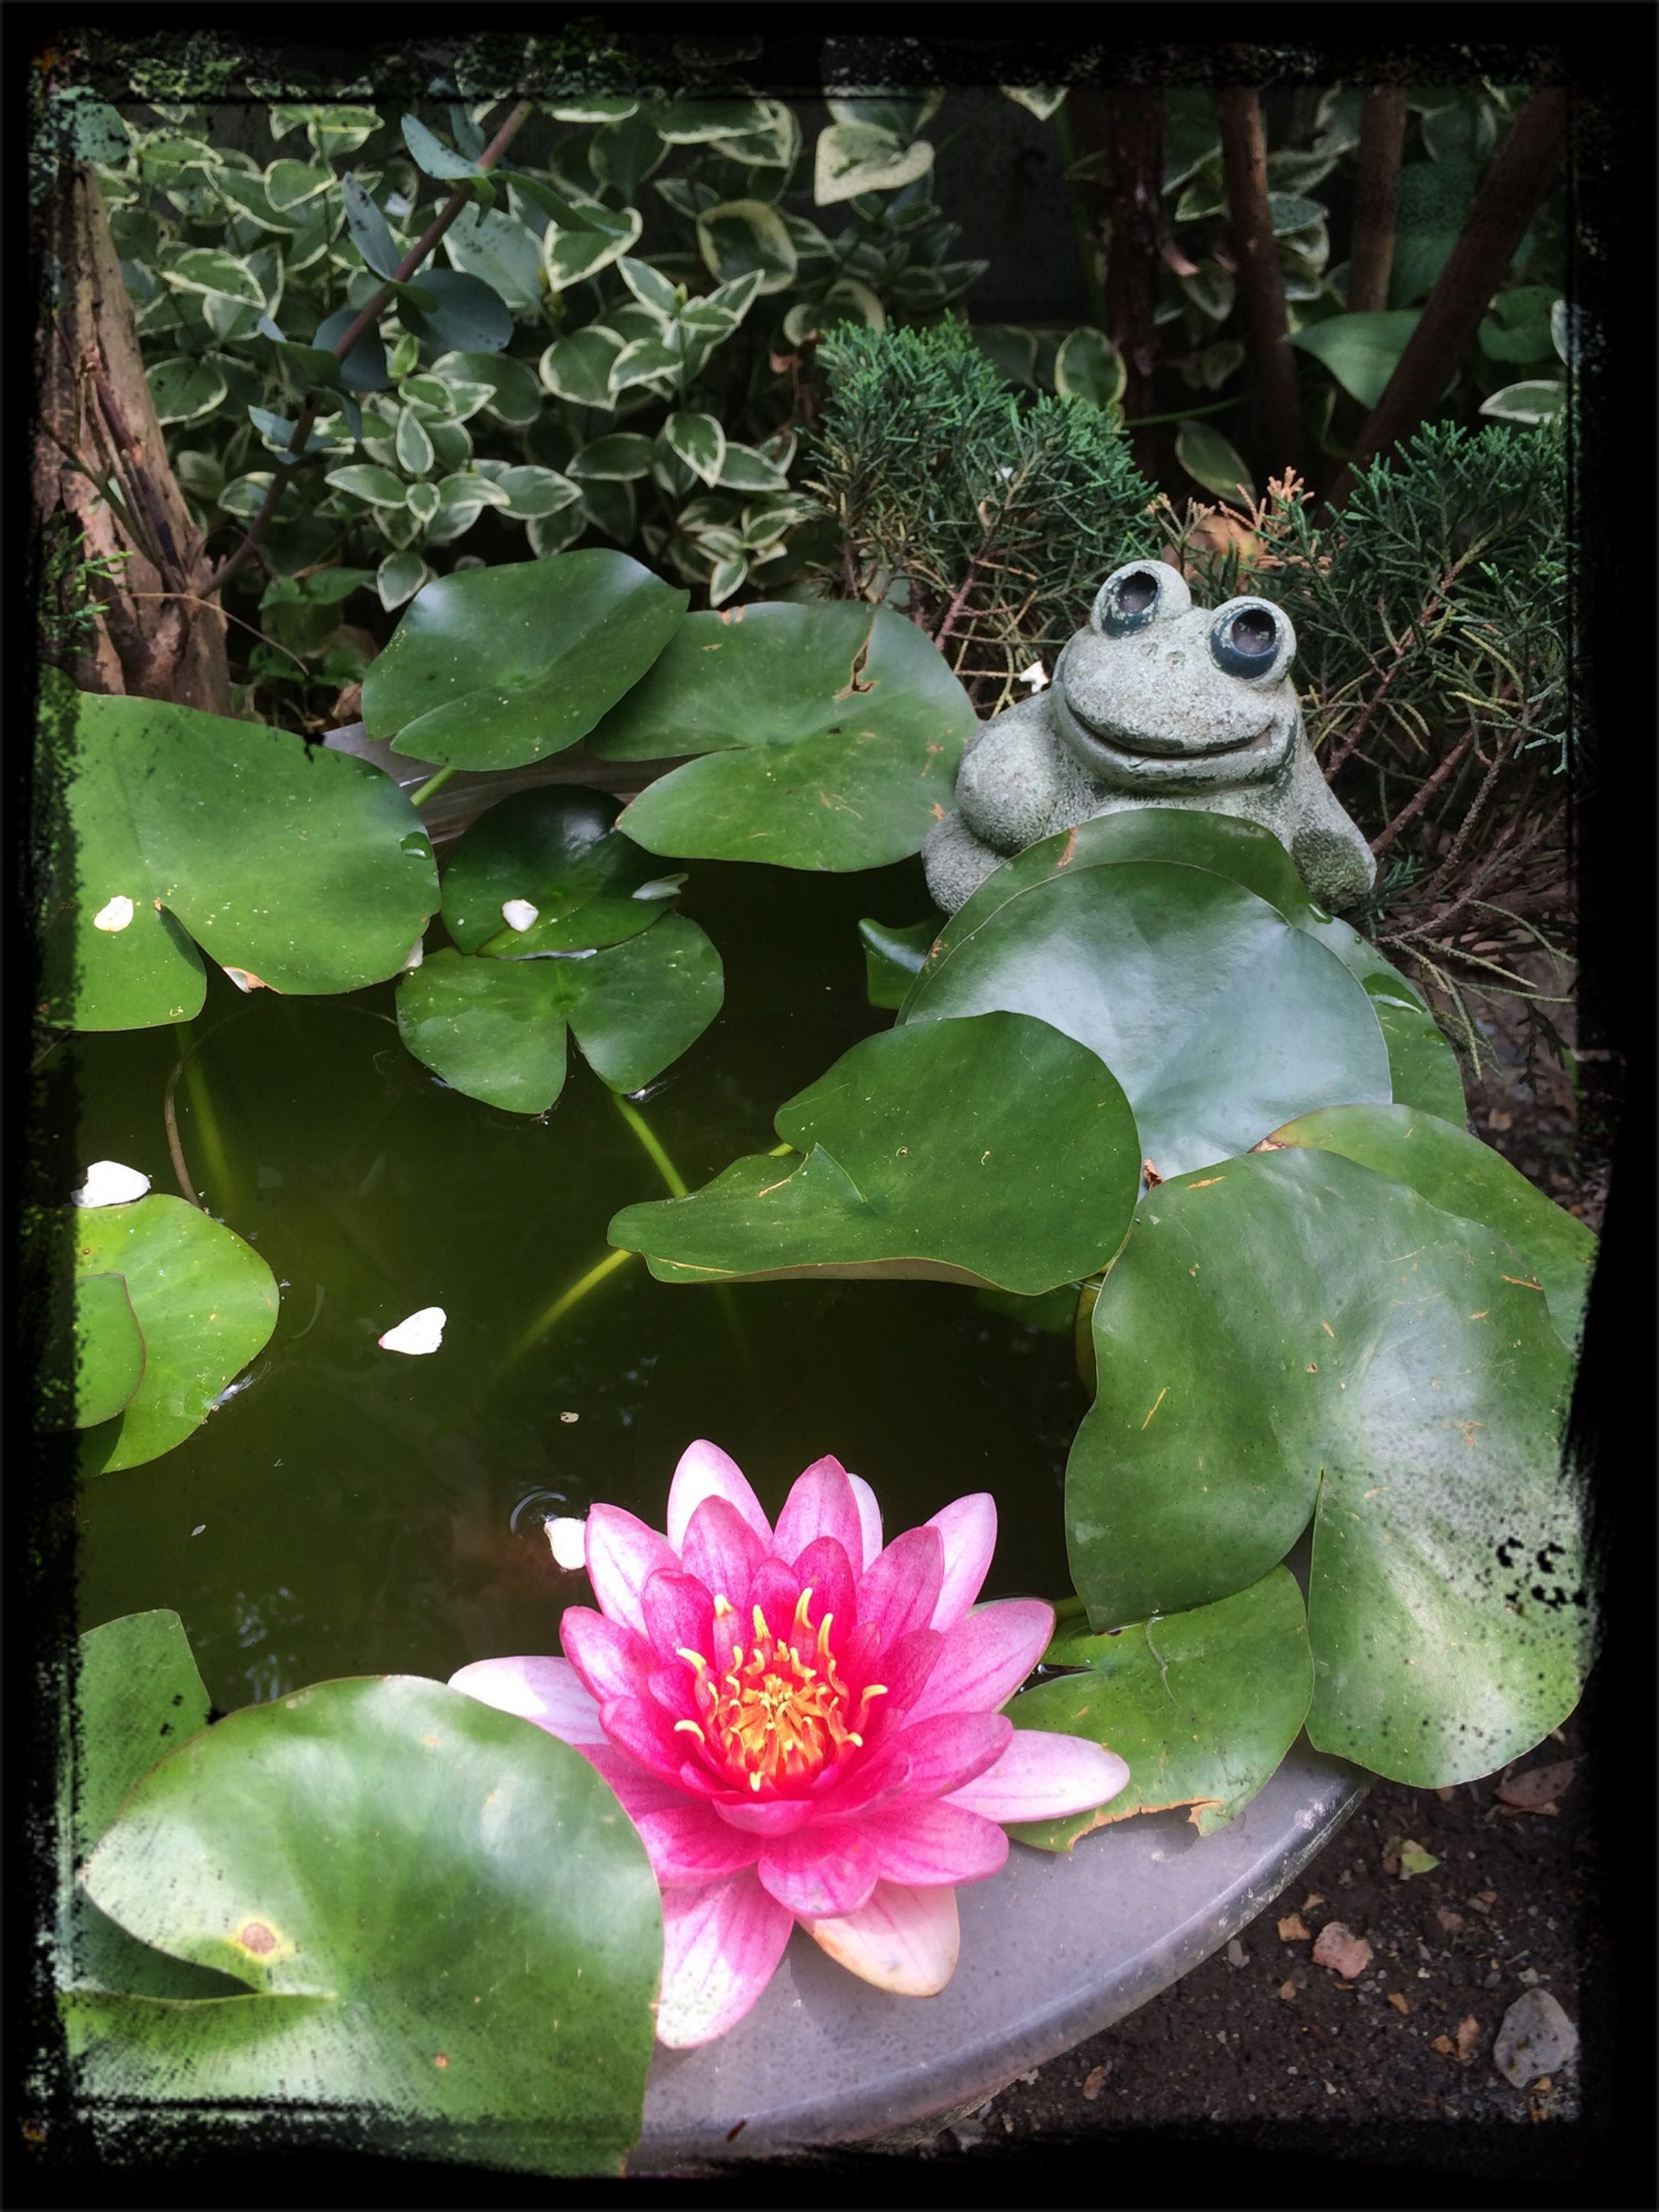 leaf, flower, freshness, water, fragility, transfer print, growth, petal, plant, pond, green color, high angle view, beauty in nature, nature, close-up, water lily, floating on water, auto post production filter, flower head, wet